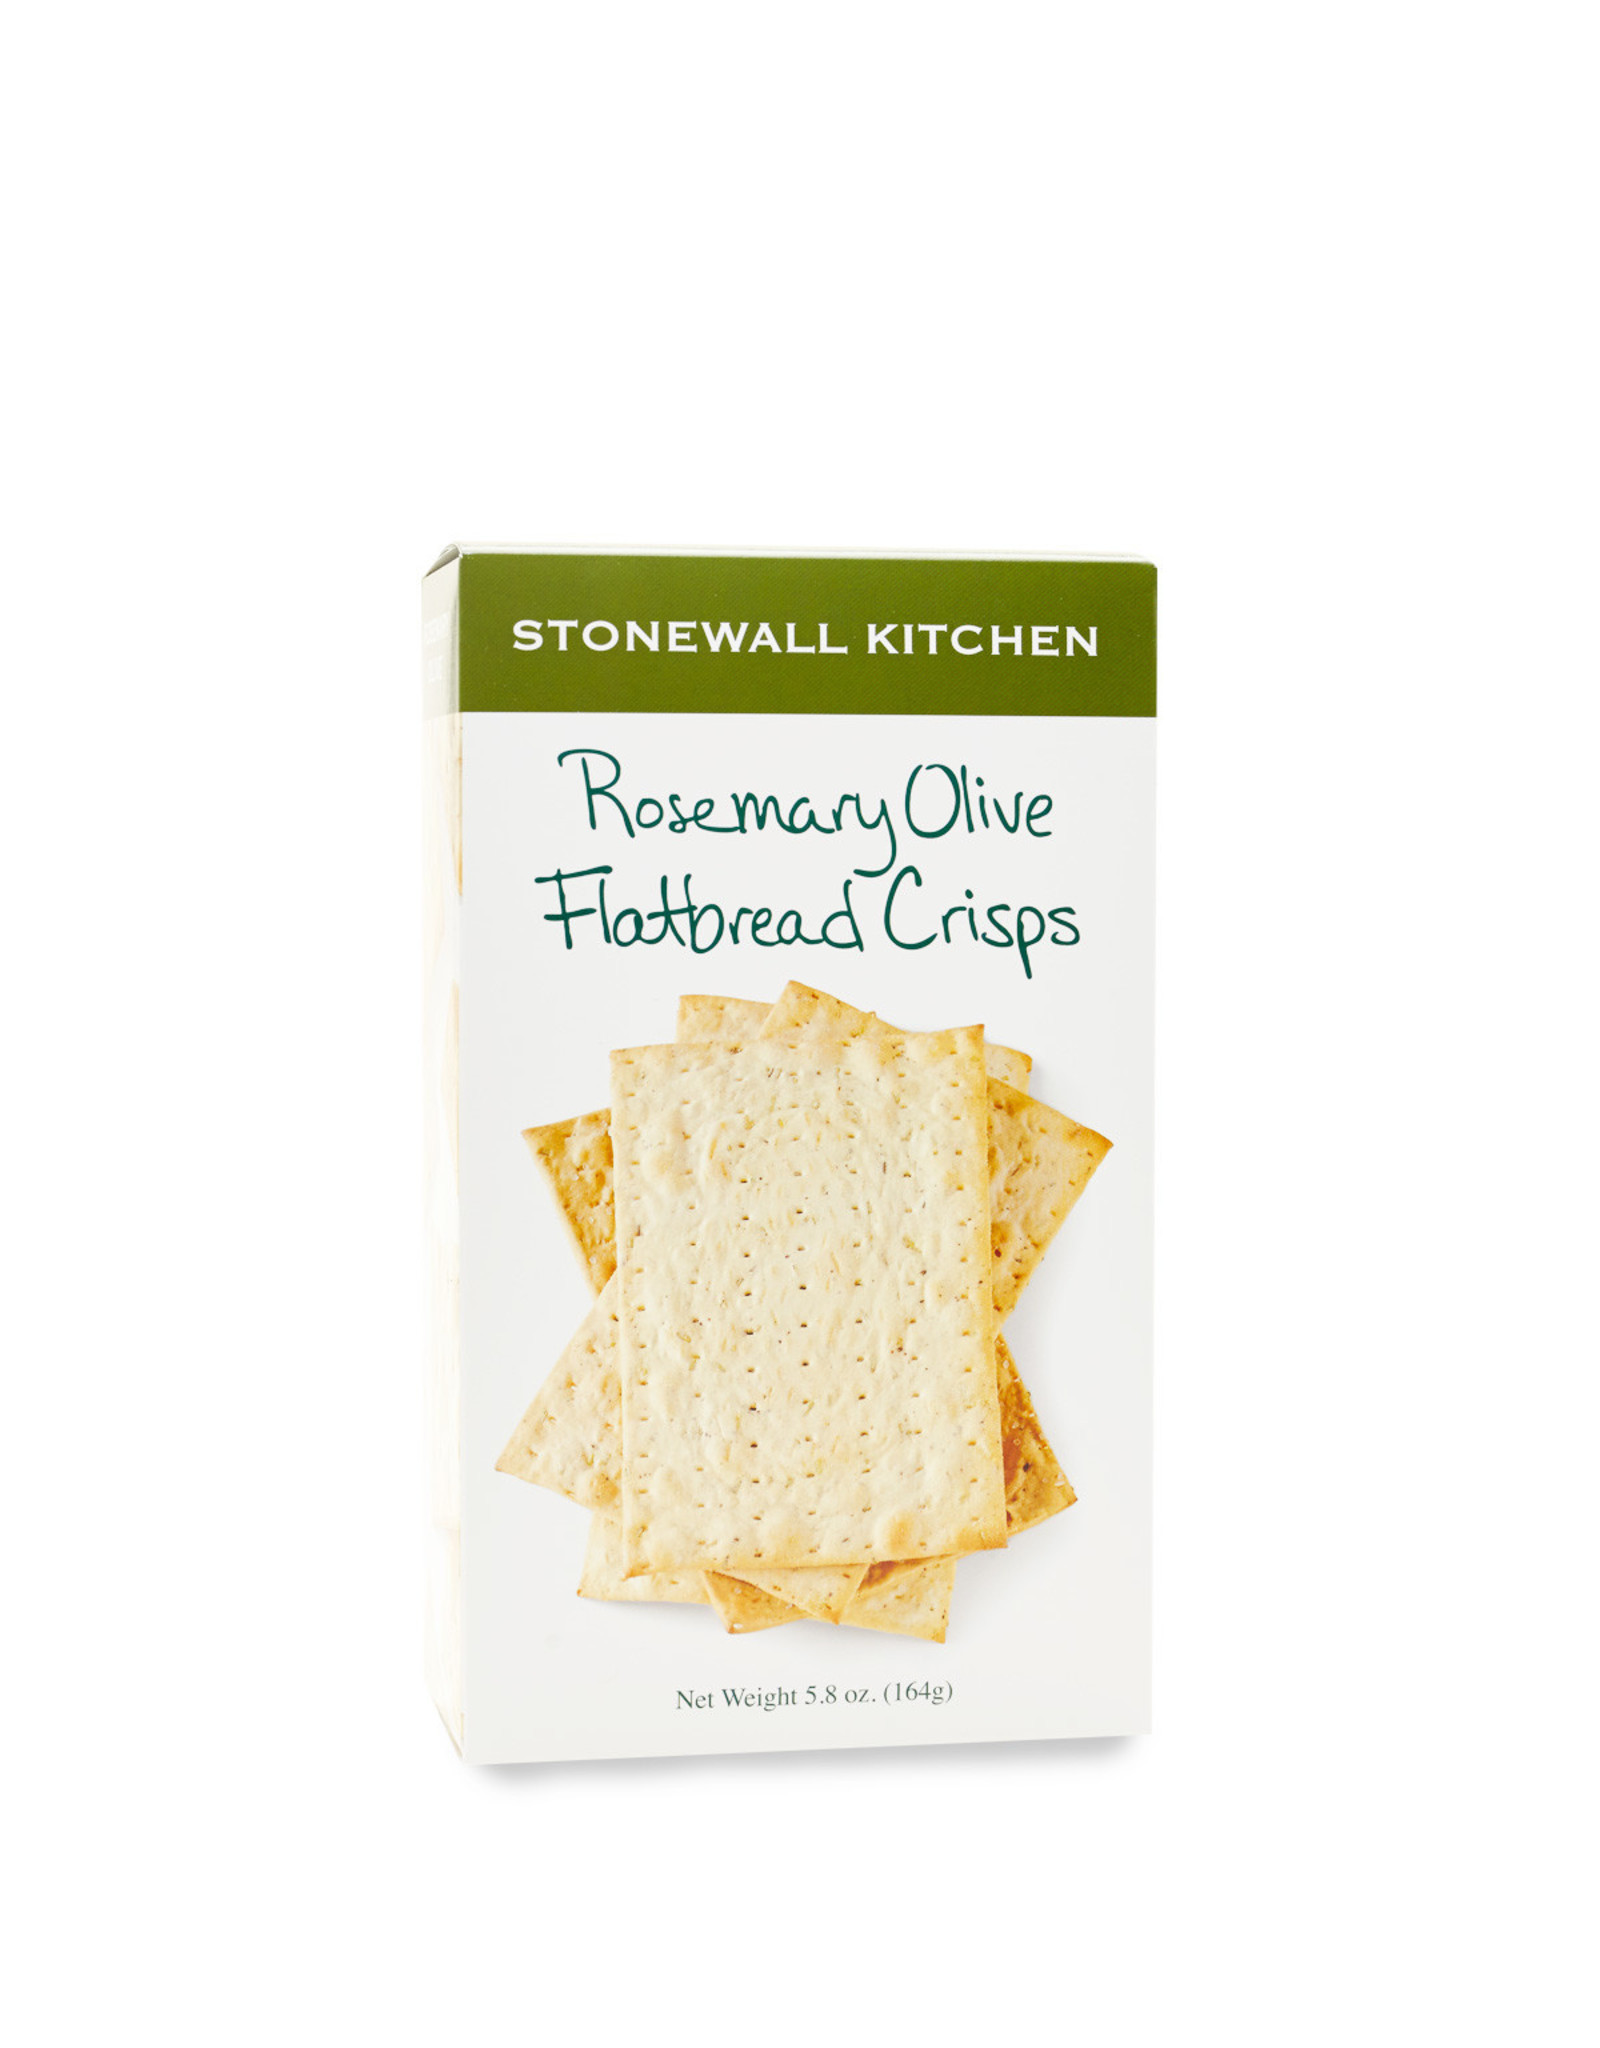 Stonewall Kitchen ROSEMARY OLIVE FLATBREAD CRISPS